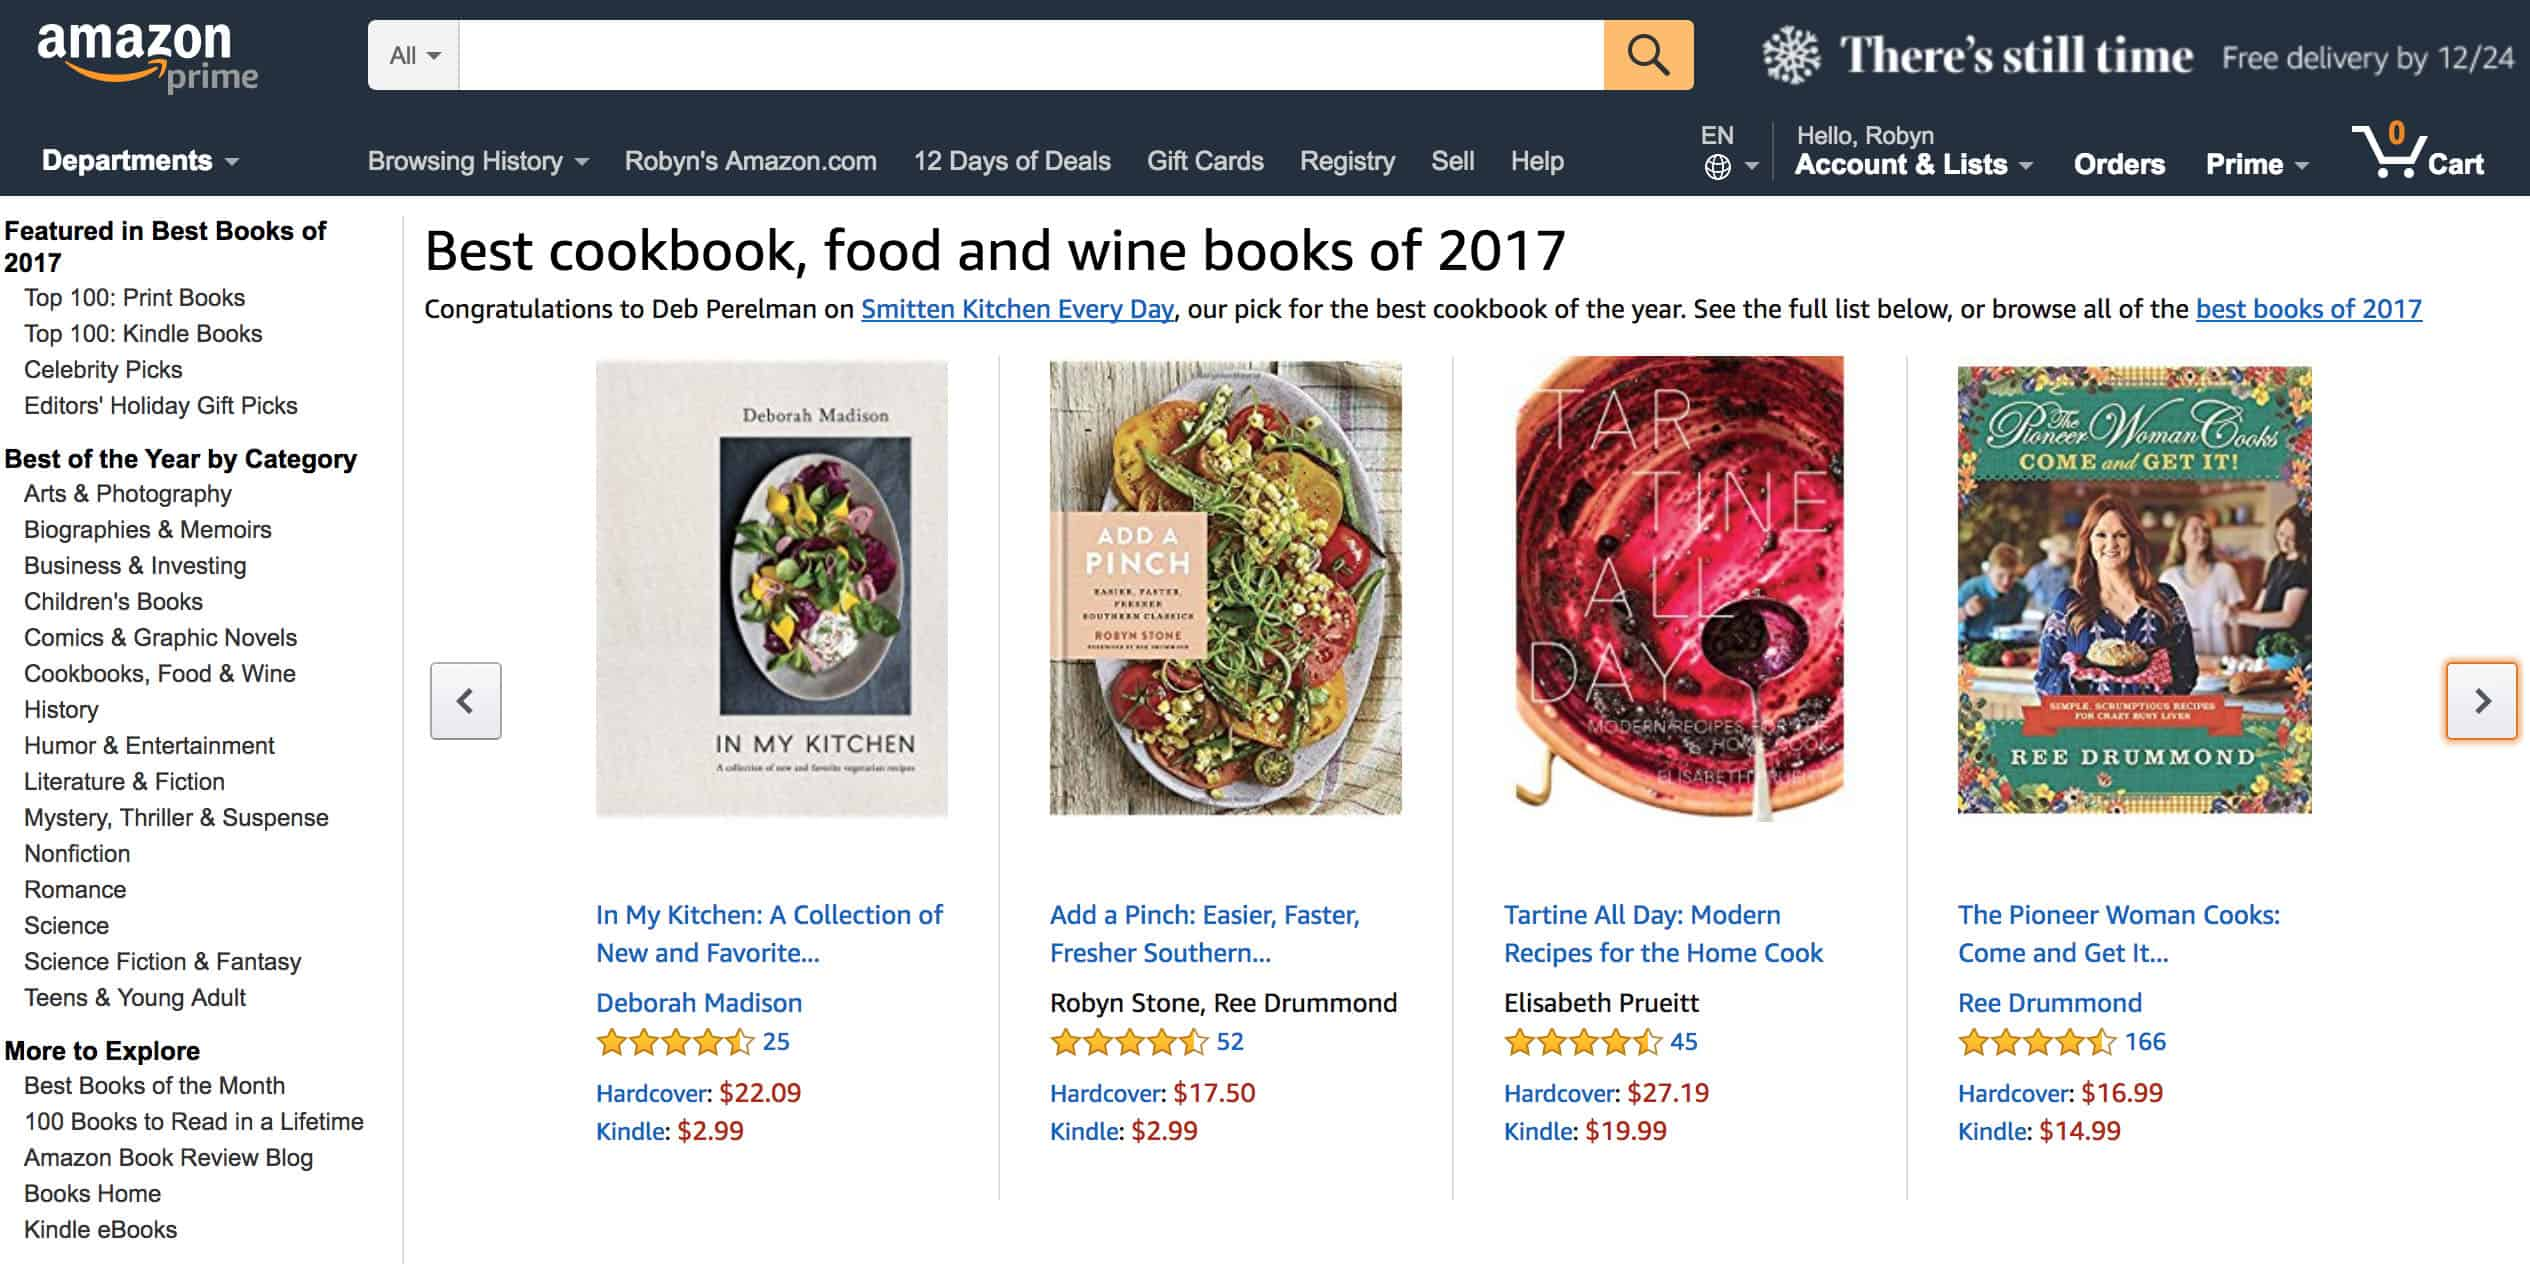 Amazon Best Cookbook, Food, Wine Books 2017 // addapinch.com